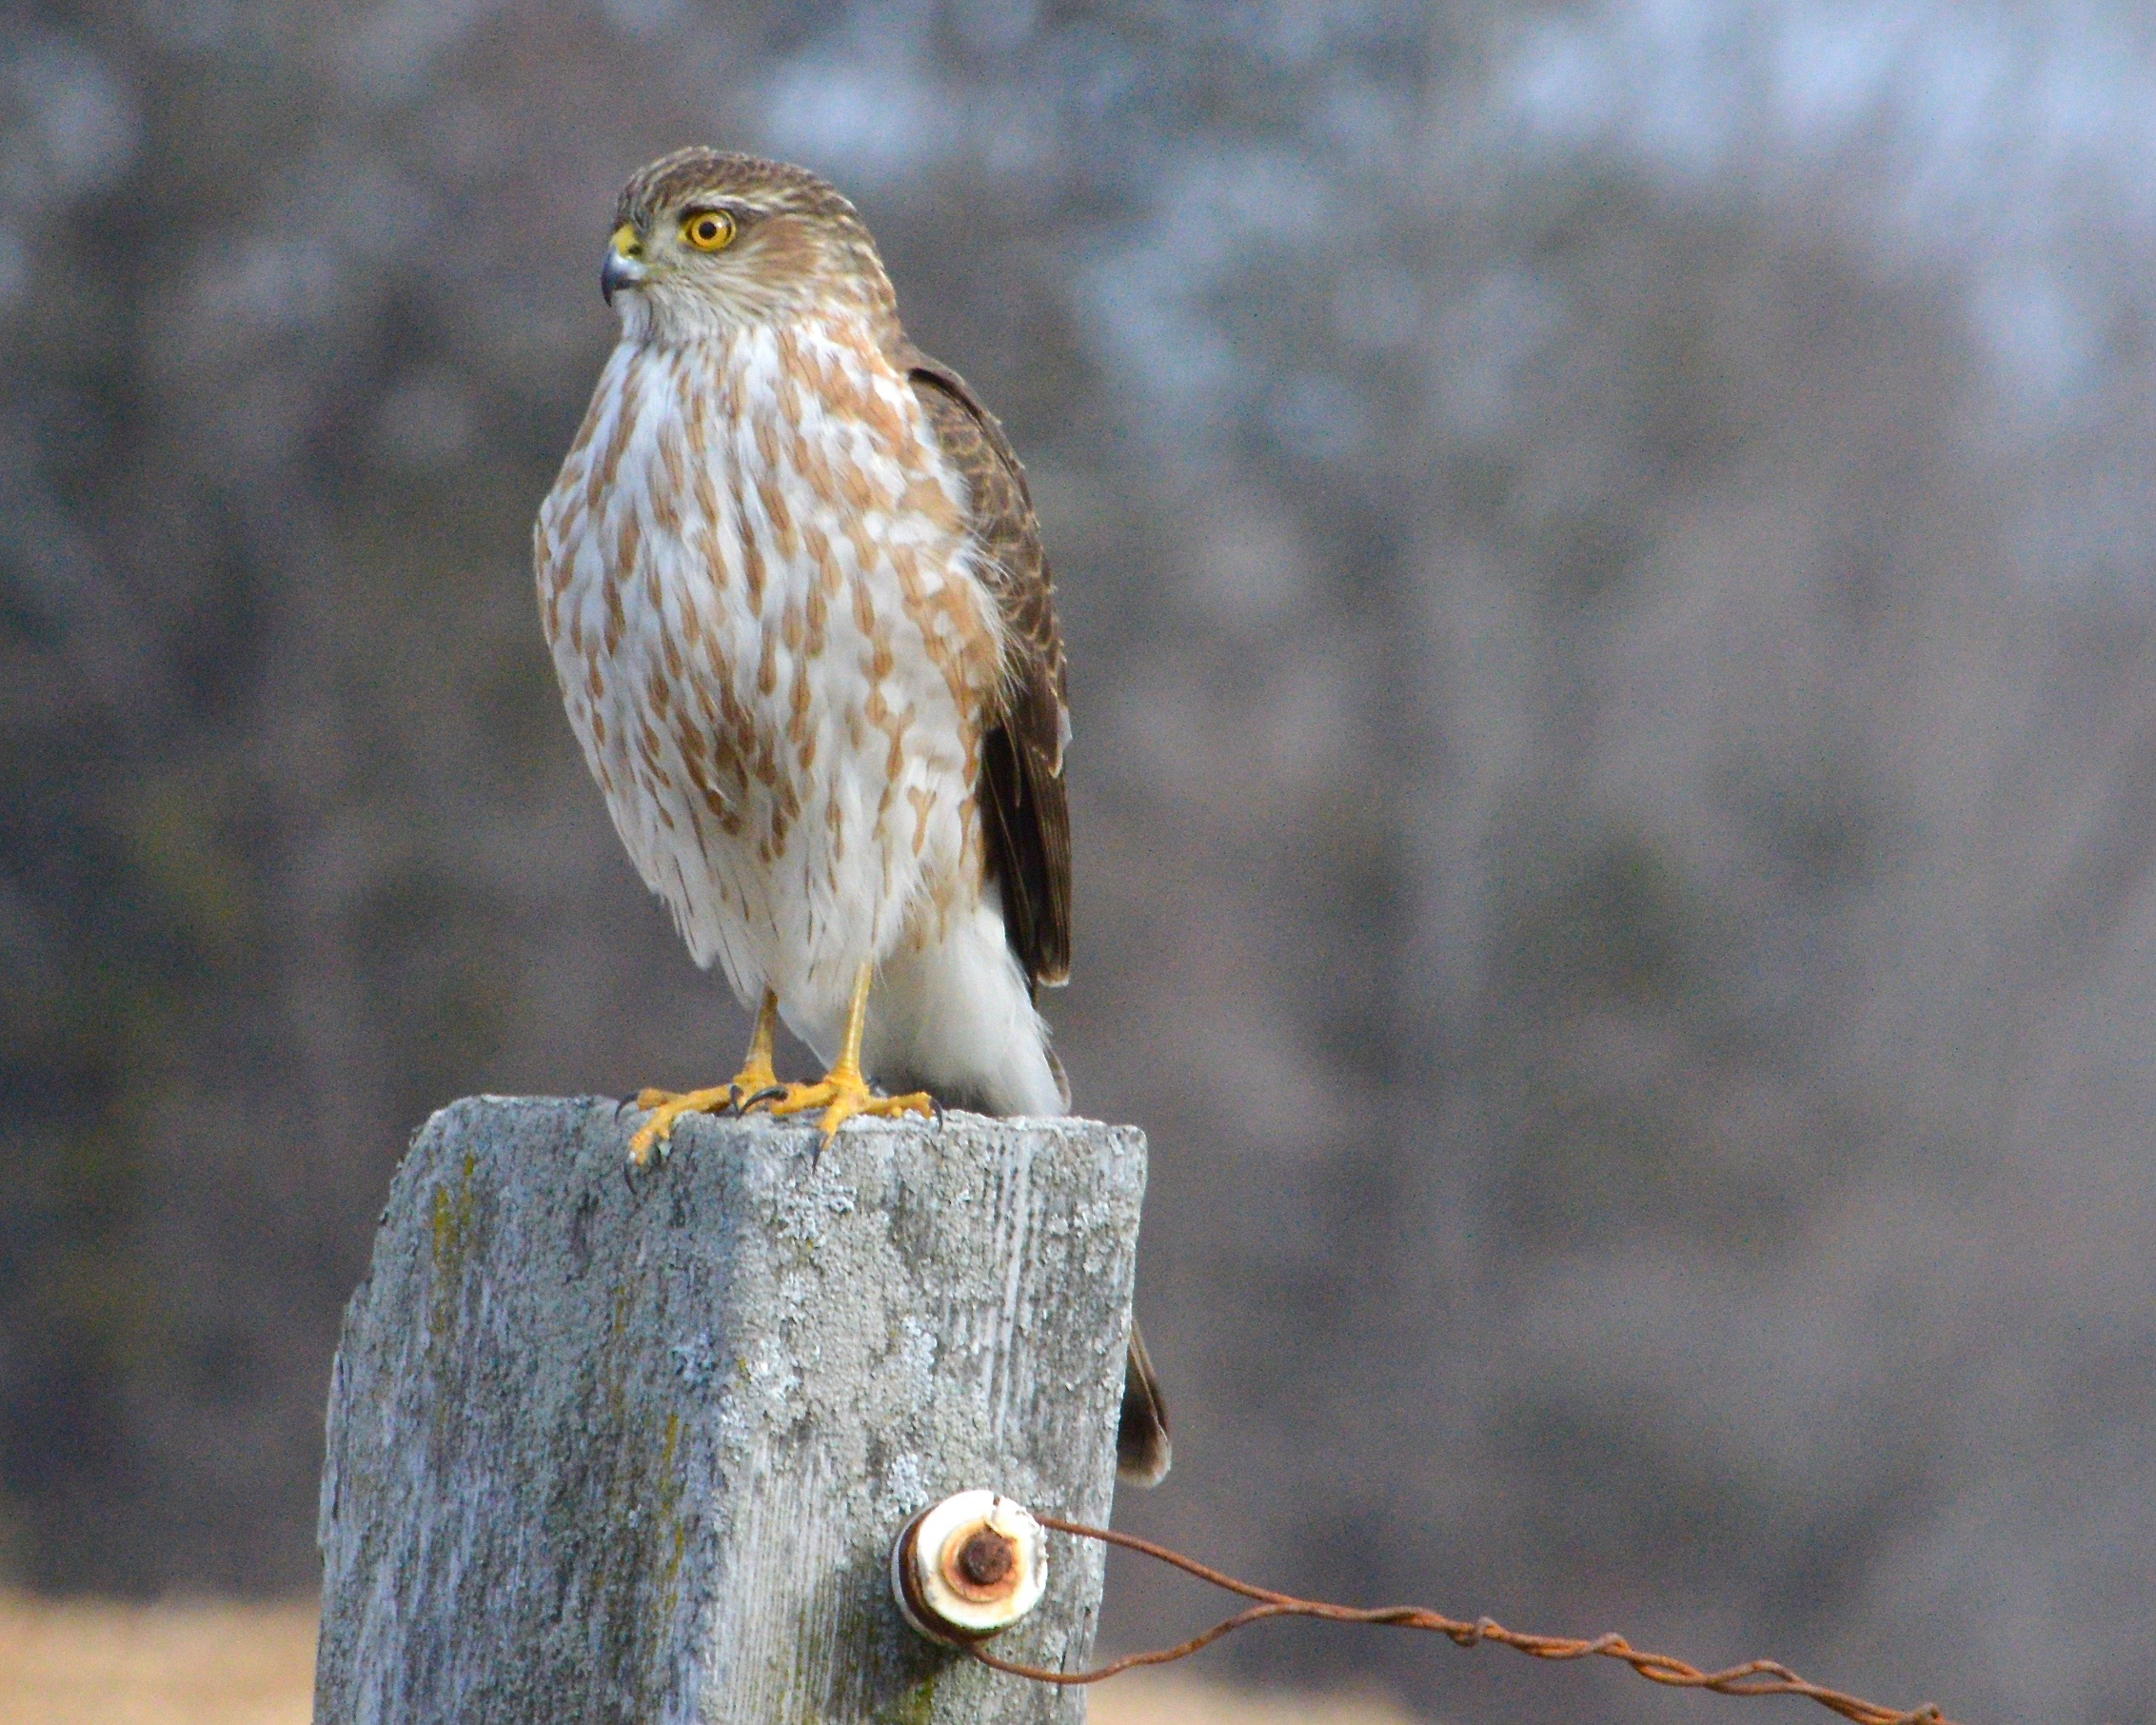 Teenager Hailey Sinon got this great shot of a Sharp-shinned Hawk at a horse farm in Southwick, Mass.